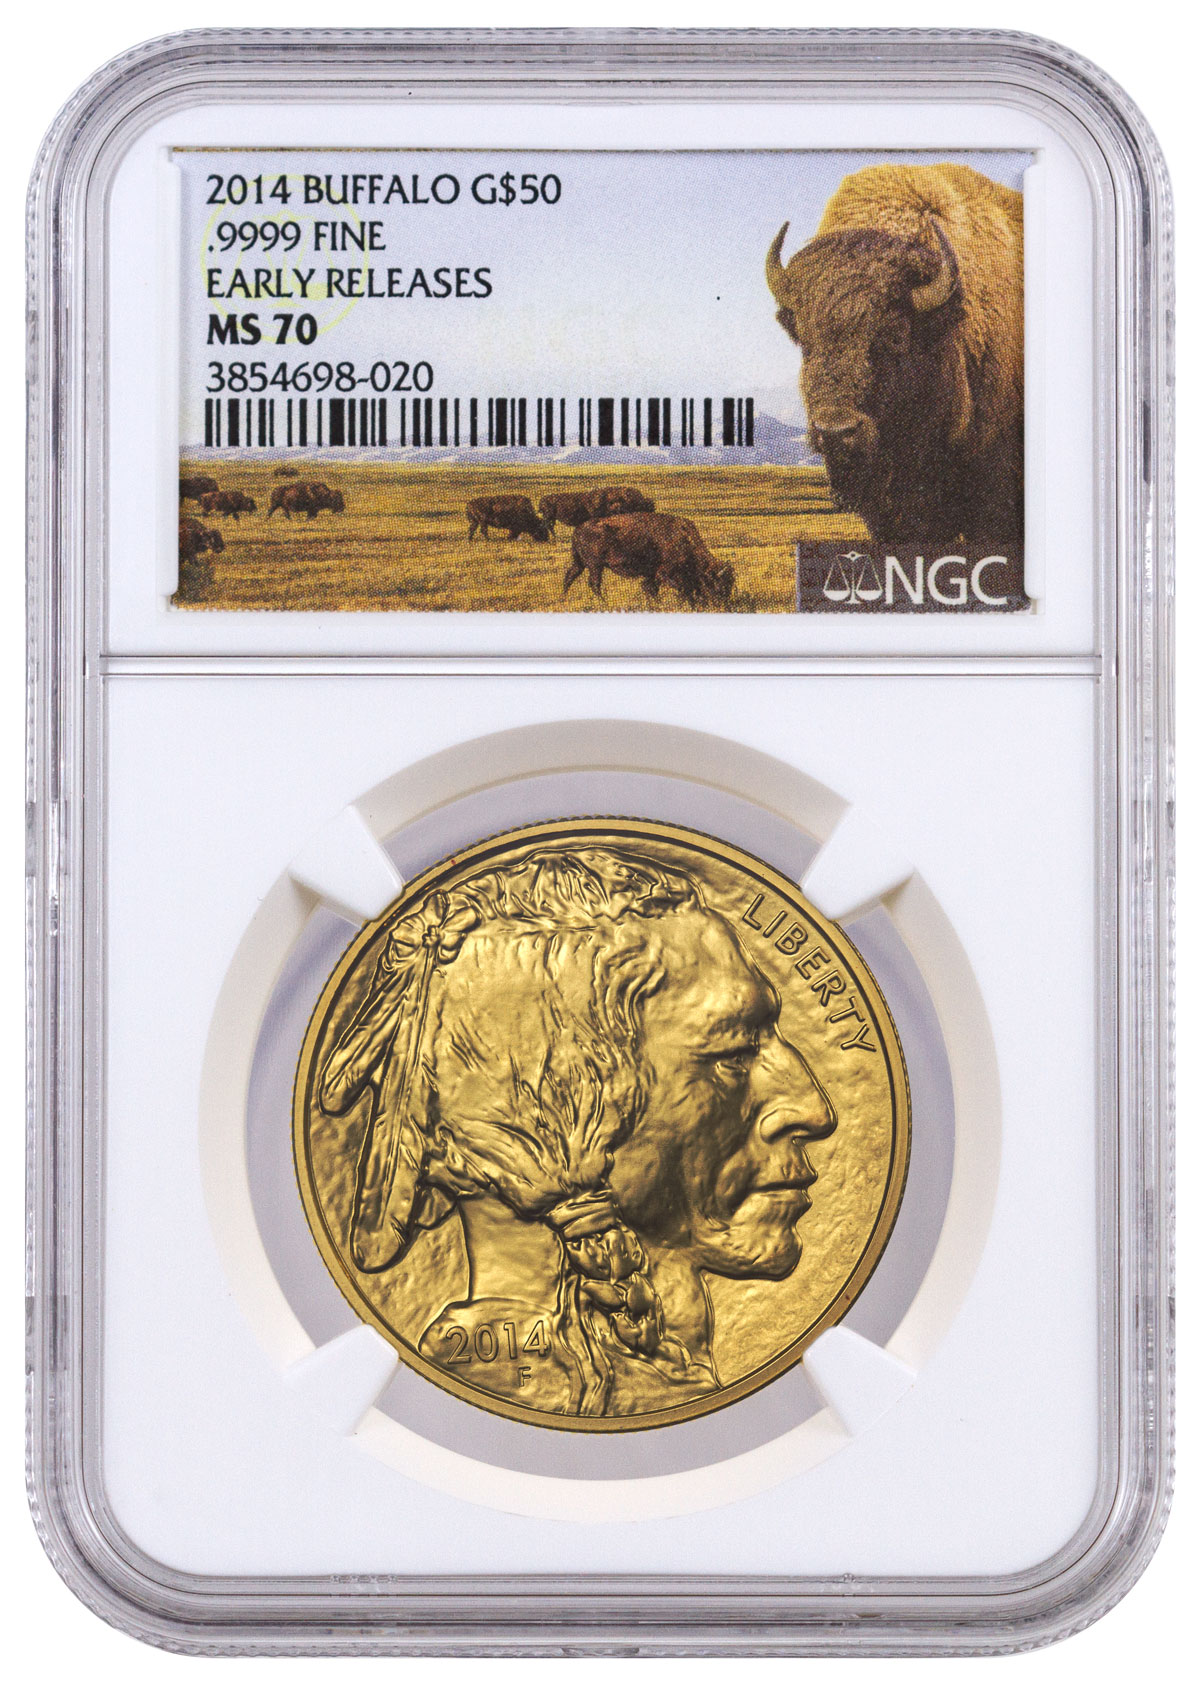 2014 1 oz Gold Buffalo $50 Coin NGC MS70 ER (Buffalo Label)